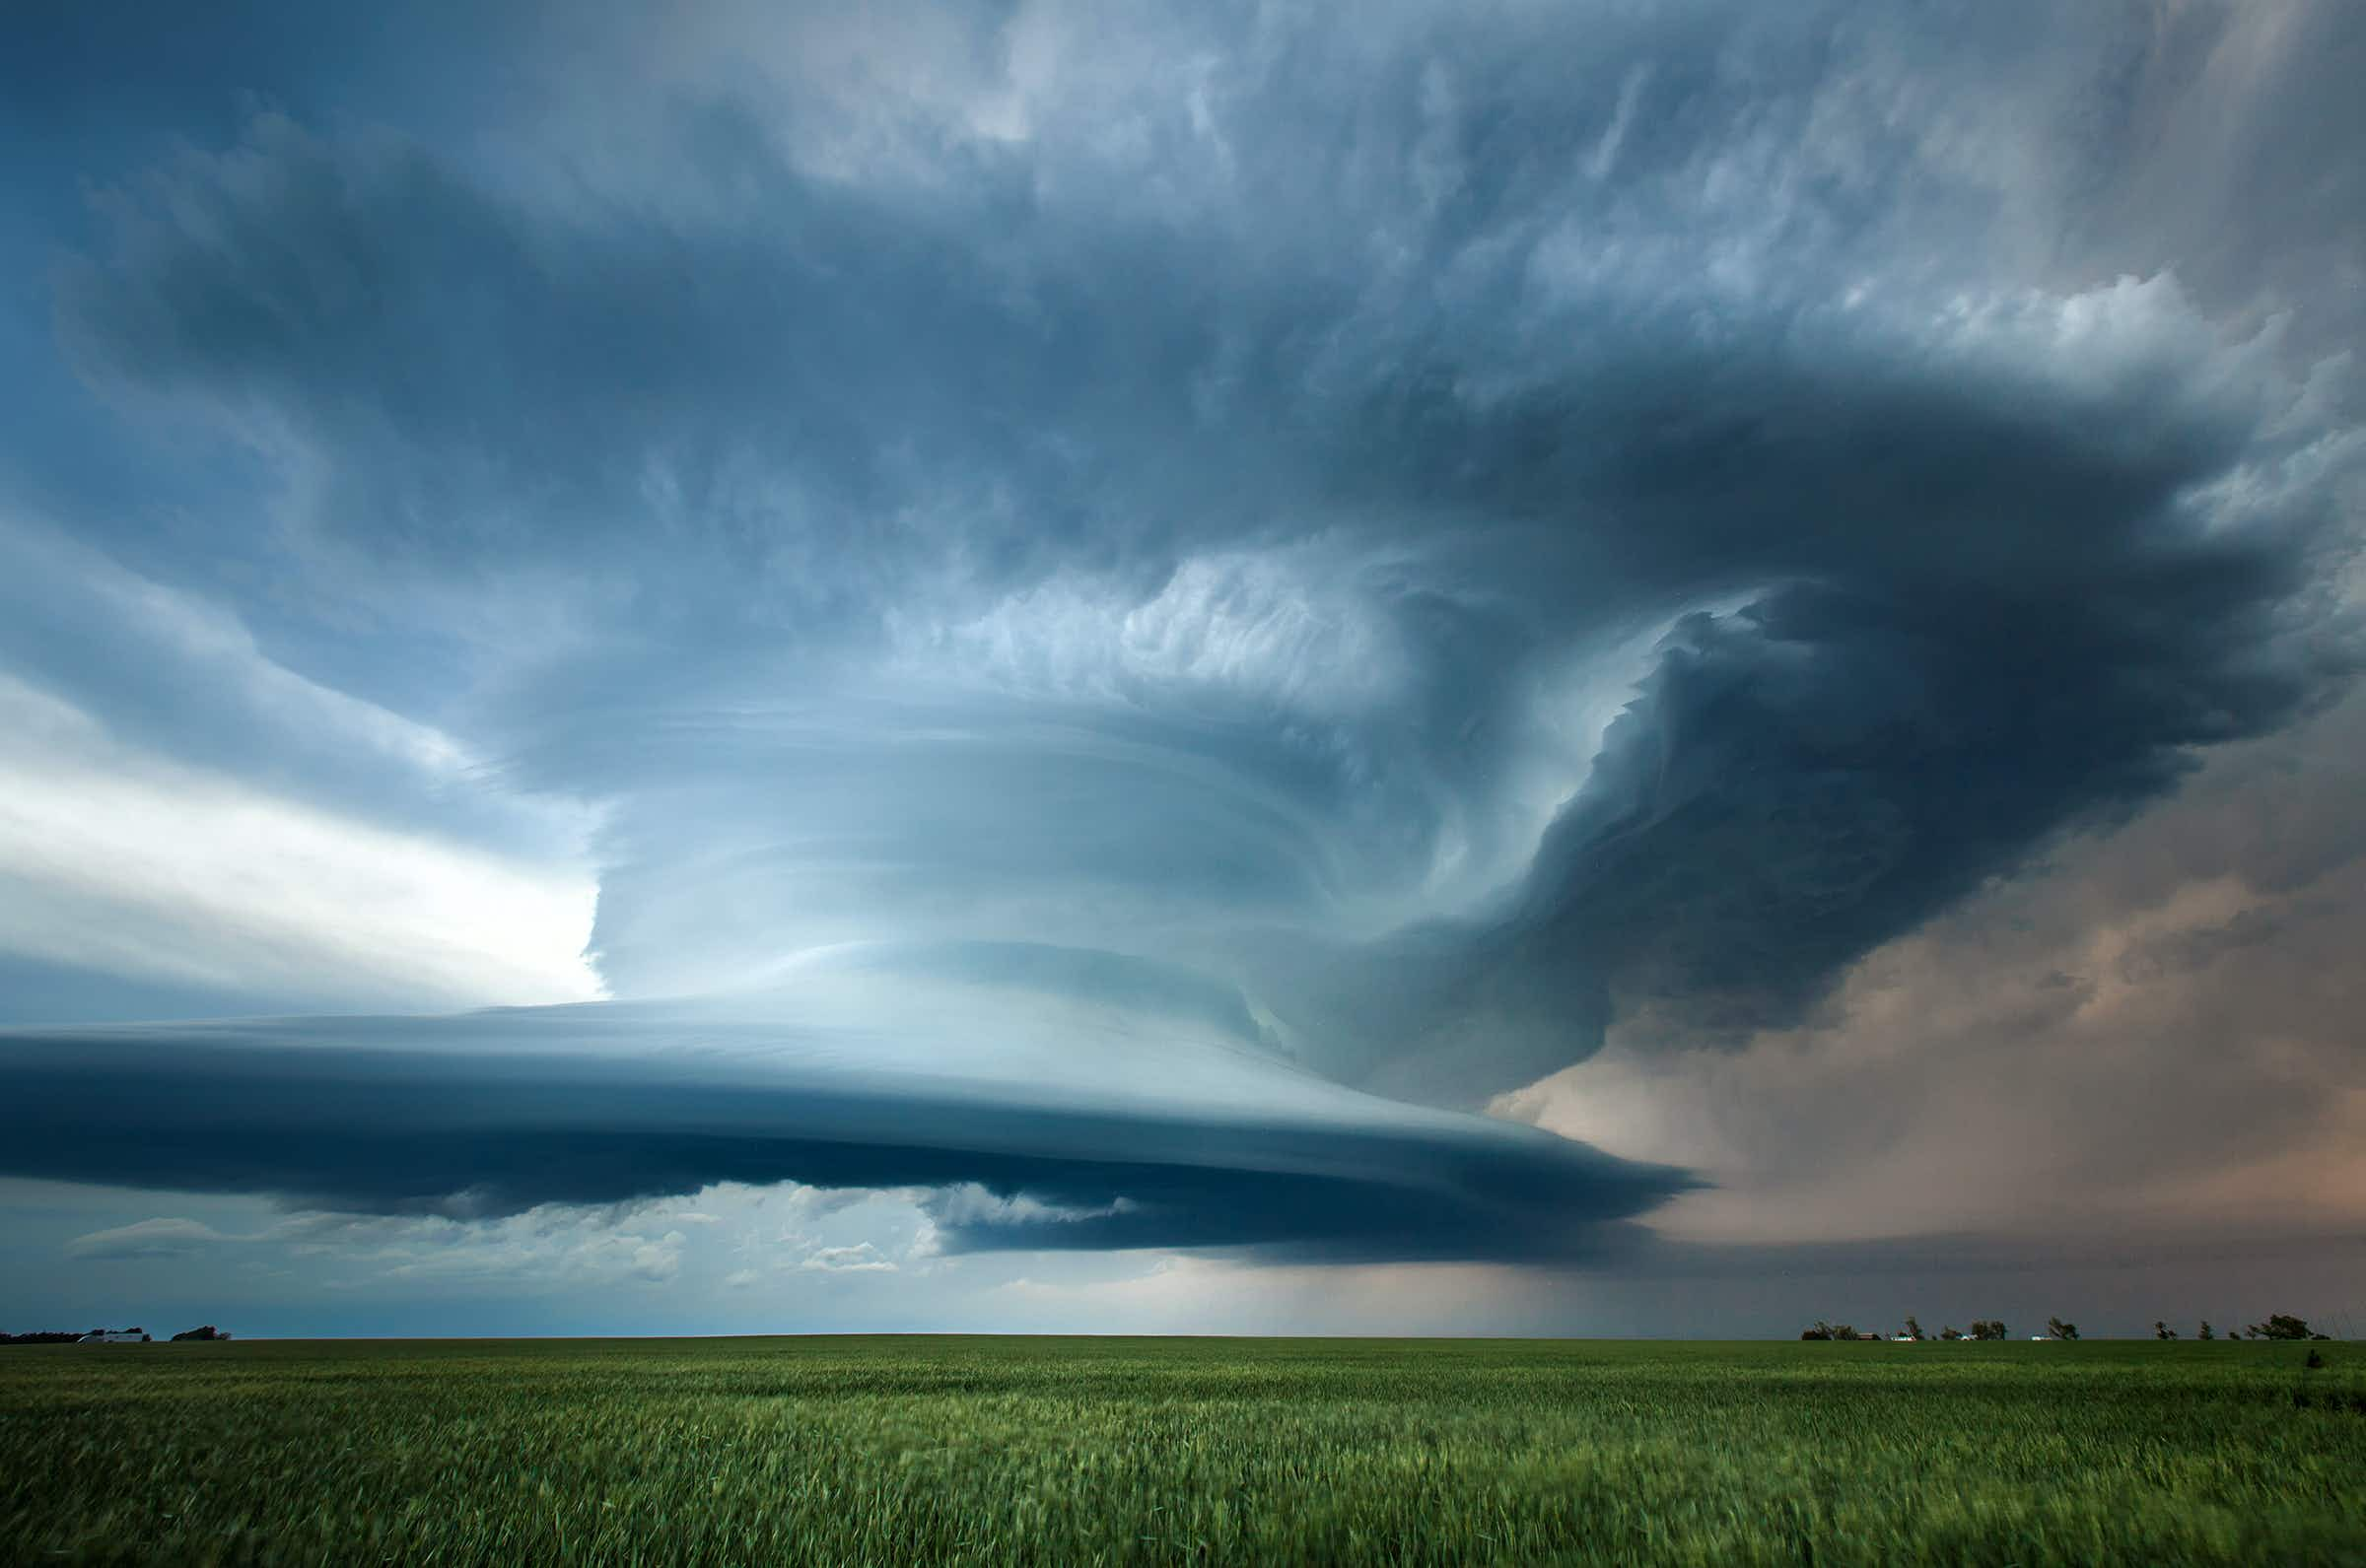 See the stunning extreme weather images captured in America's Tornado Alley